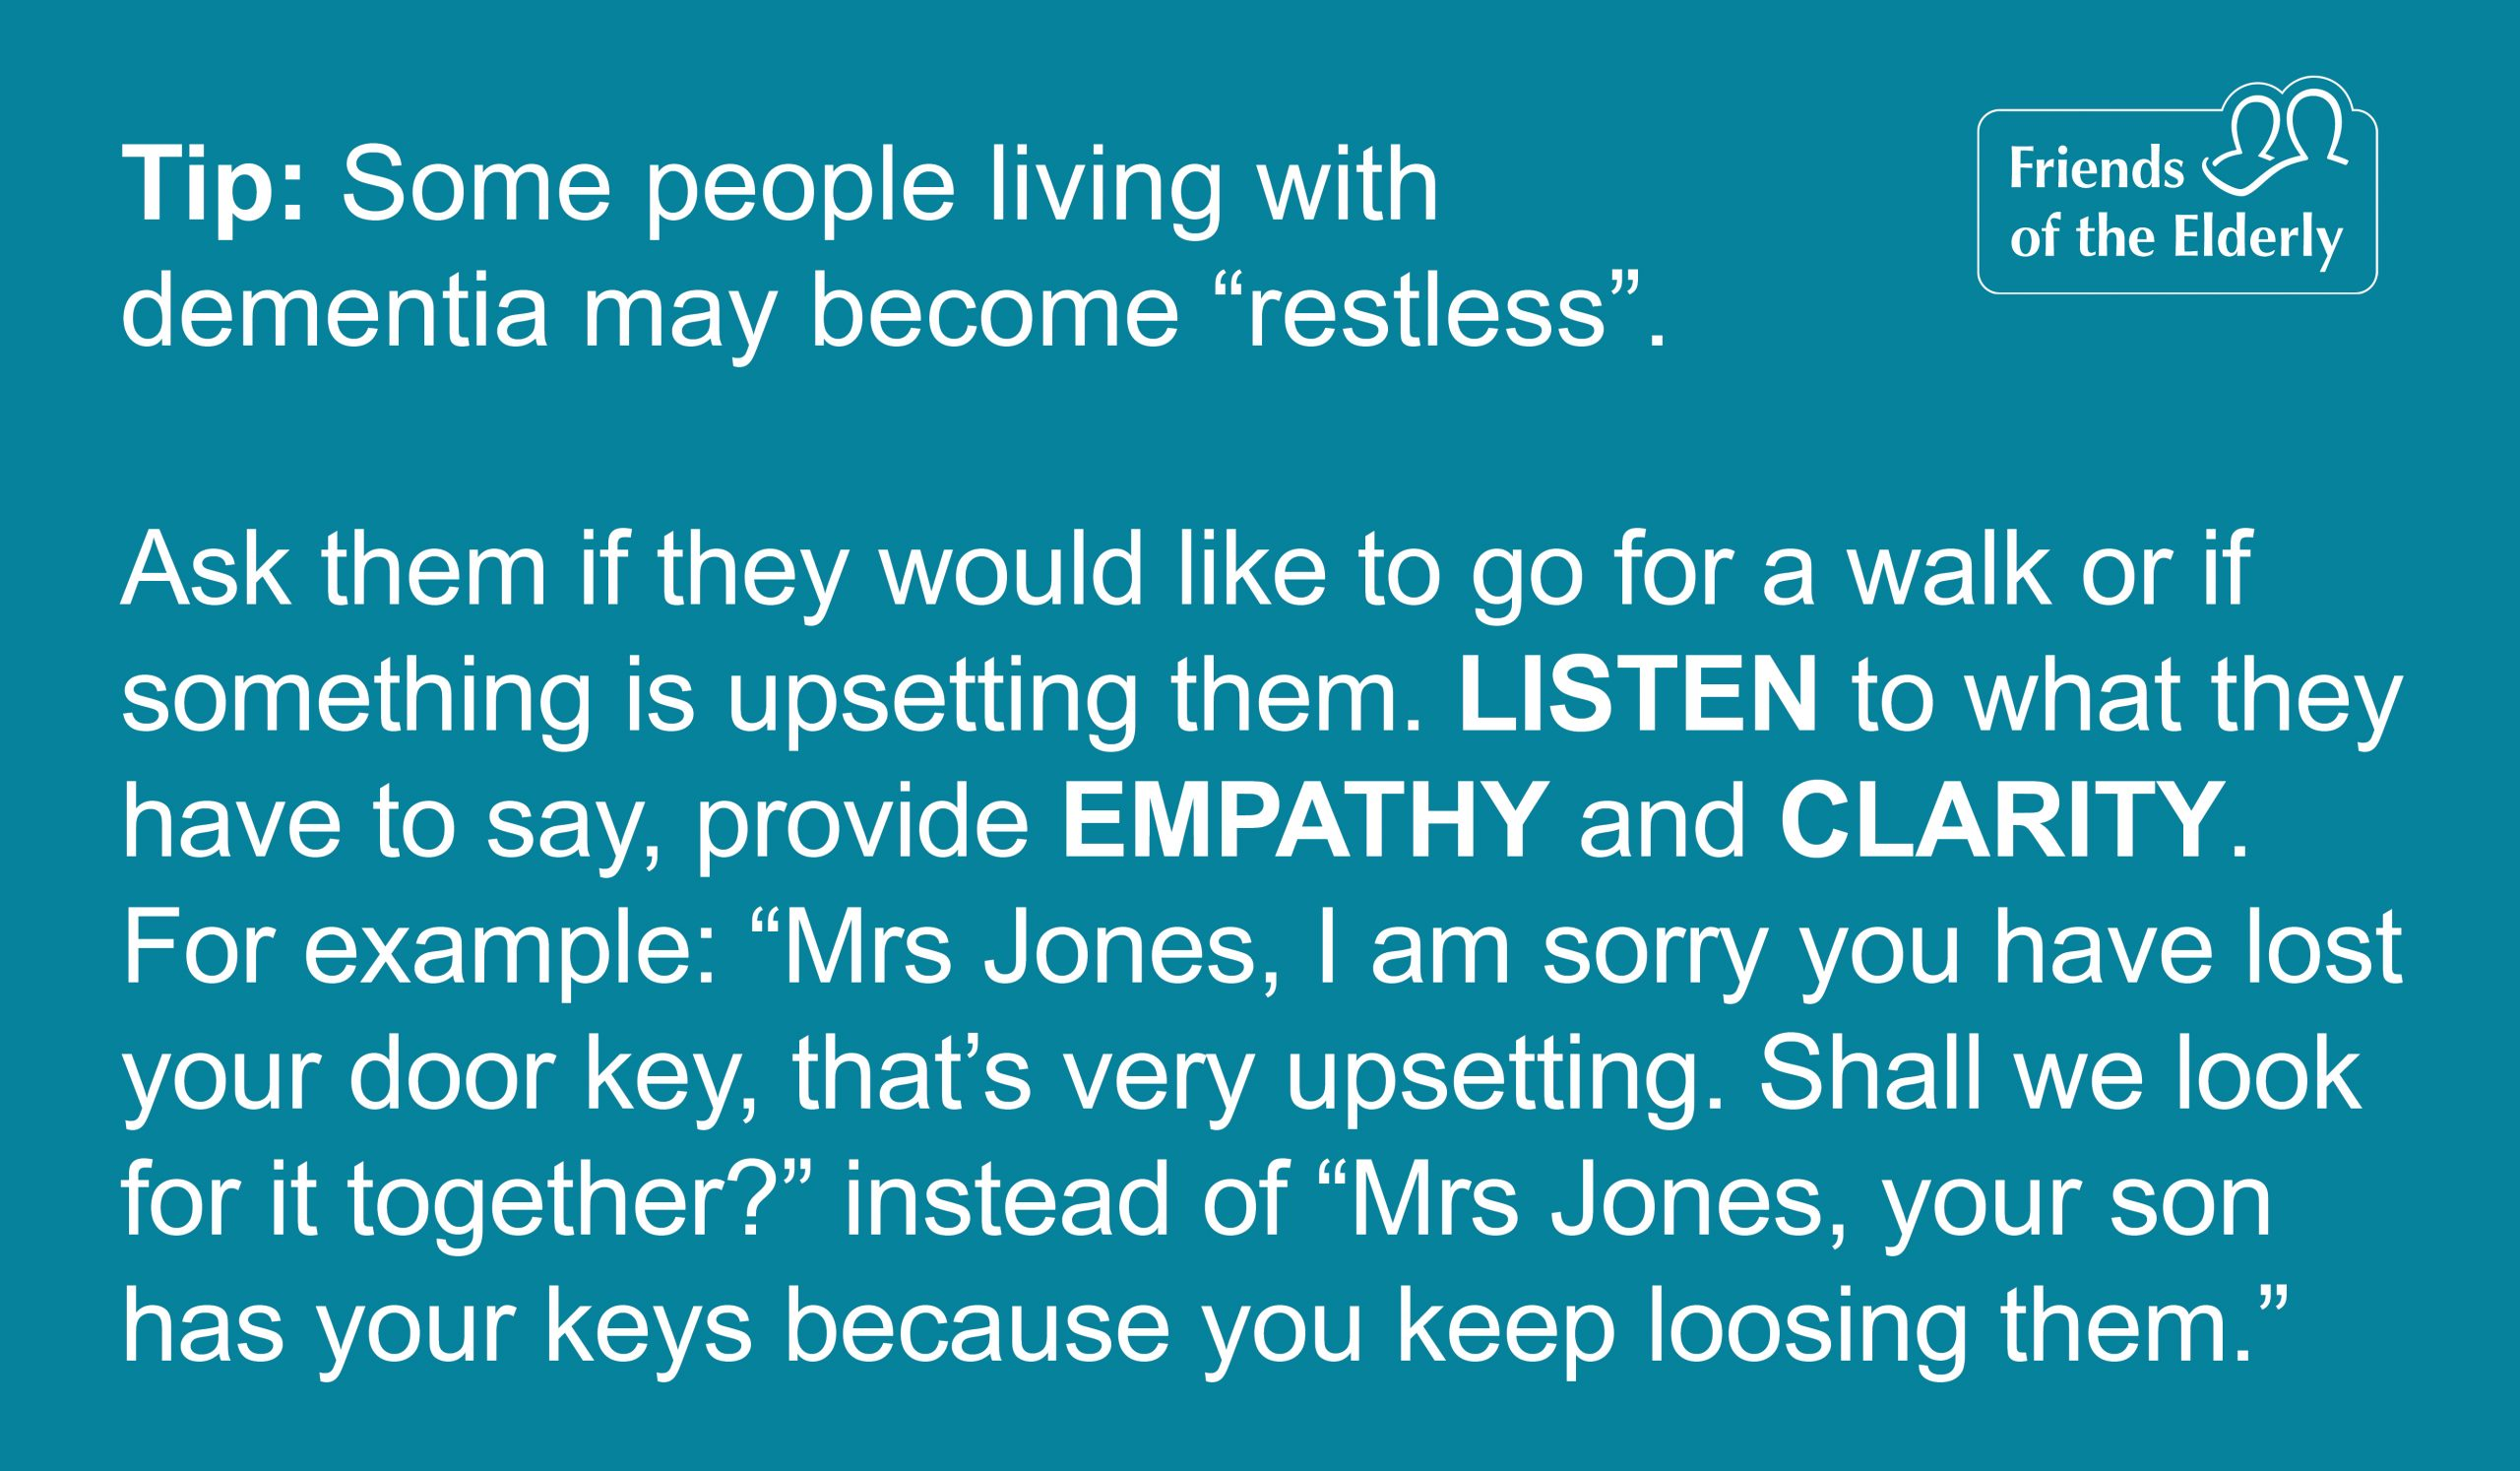 """Tip 2: Navigating restless situations. Tip 2: Navigating restless situations. Some people living with dementia may become 'restless'. Ask them if they would like to go for a walk or if something is upsetting them. Listen to what they have to say, provide empathy and clarity. For example: """"Mrs Jones, I am sorry you have lost your door key, that's very upsetting. Shall we look for it together?"""" instead of """"Mrs Jones, your son has your keys because you keep loosing them."""""""